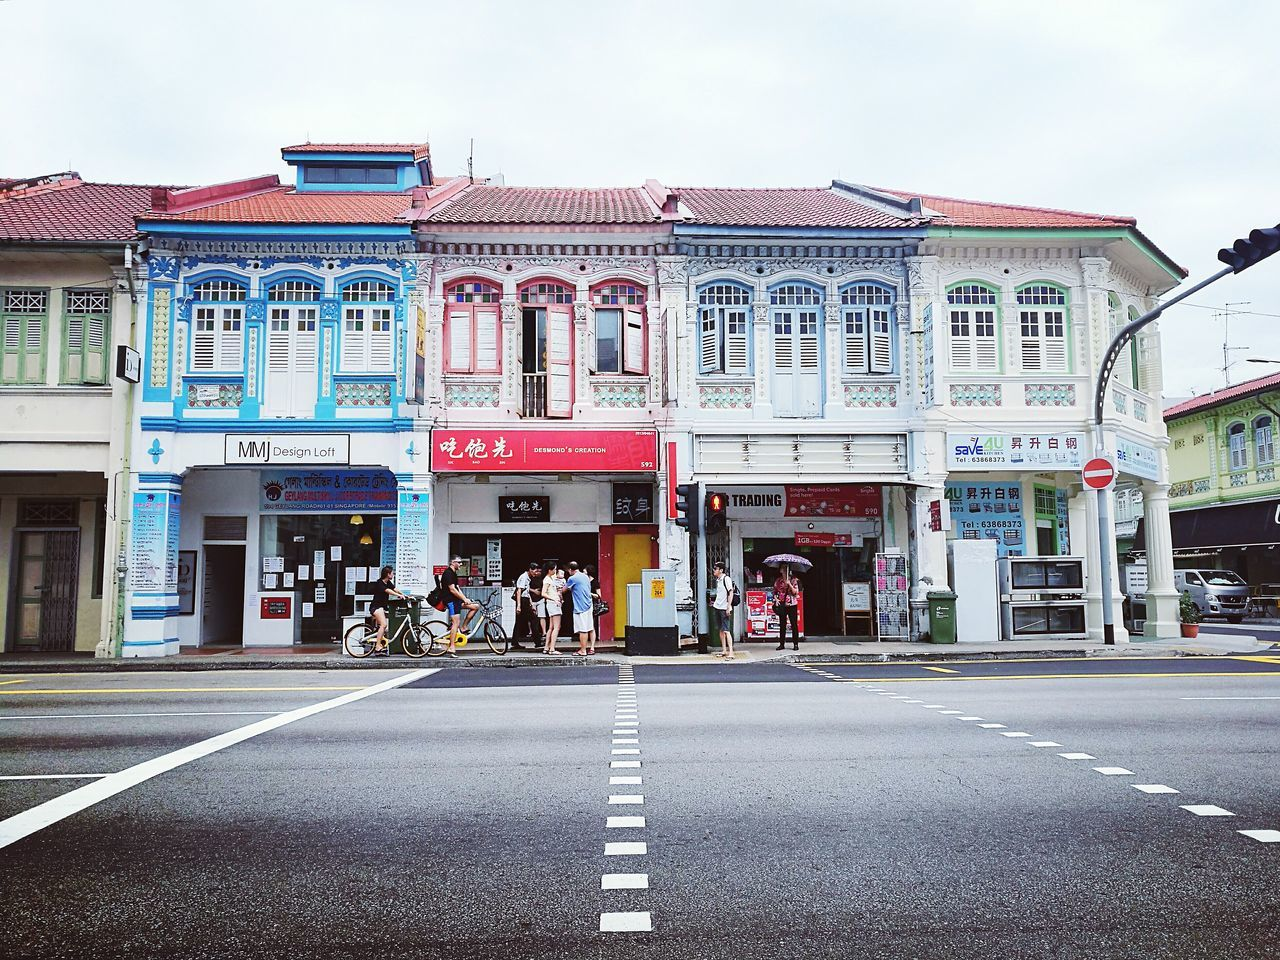 Architecture Outdoors Built Structure Road Building Exterior Day Politics And Government City Sky People Singapore Shophouse City Architecture Cityscape ASIA